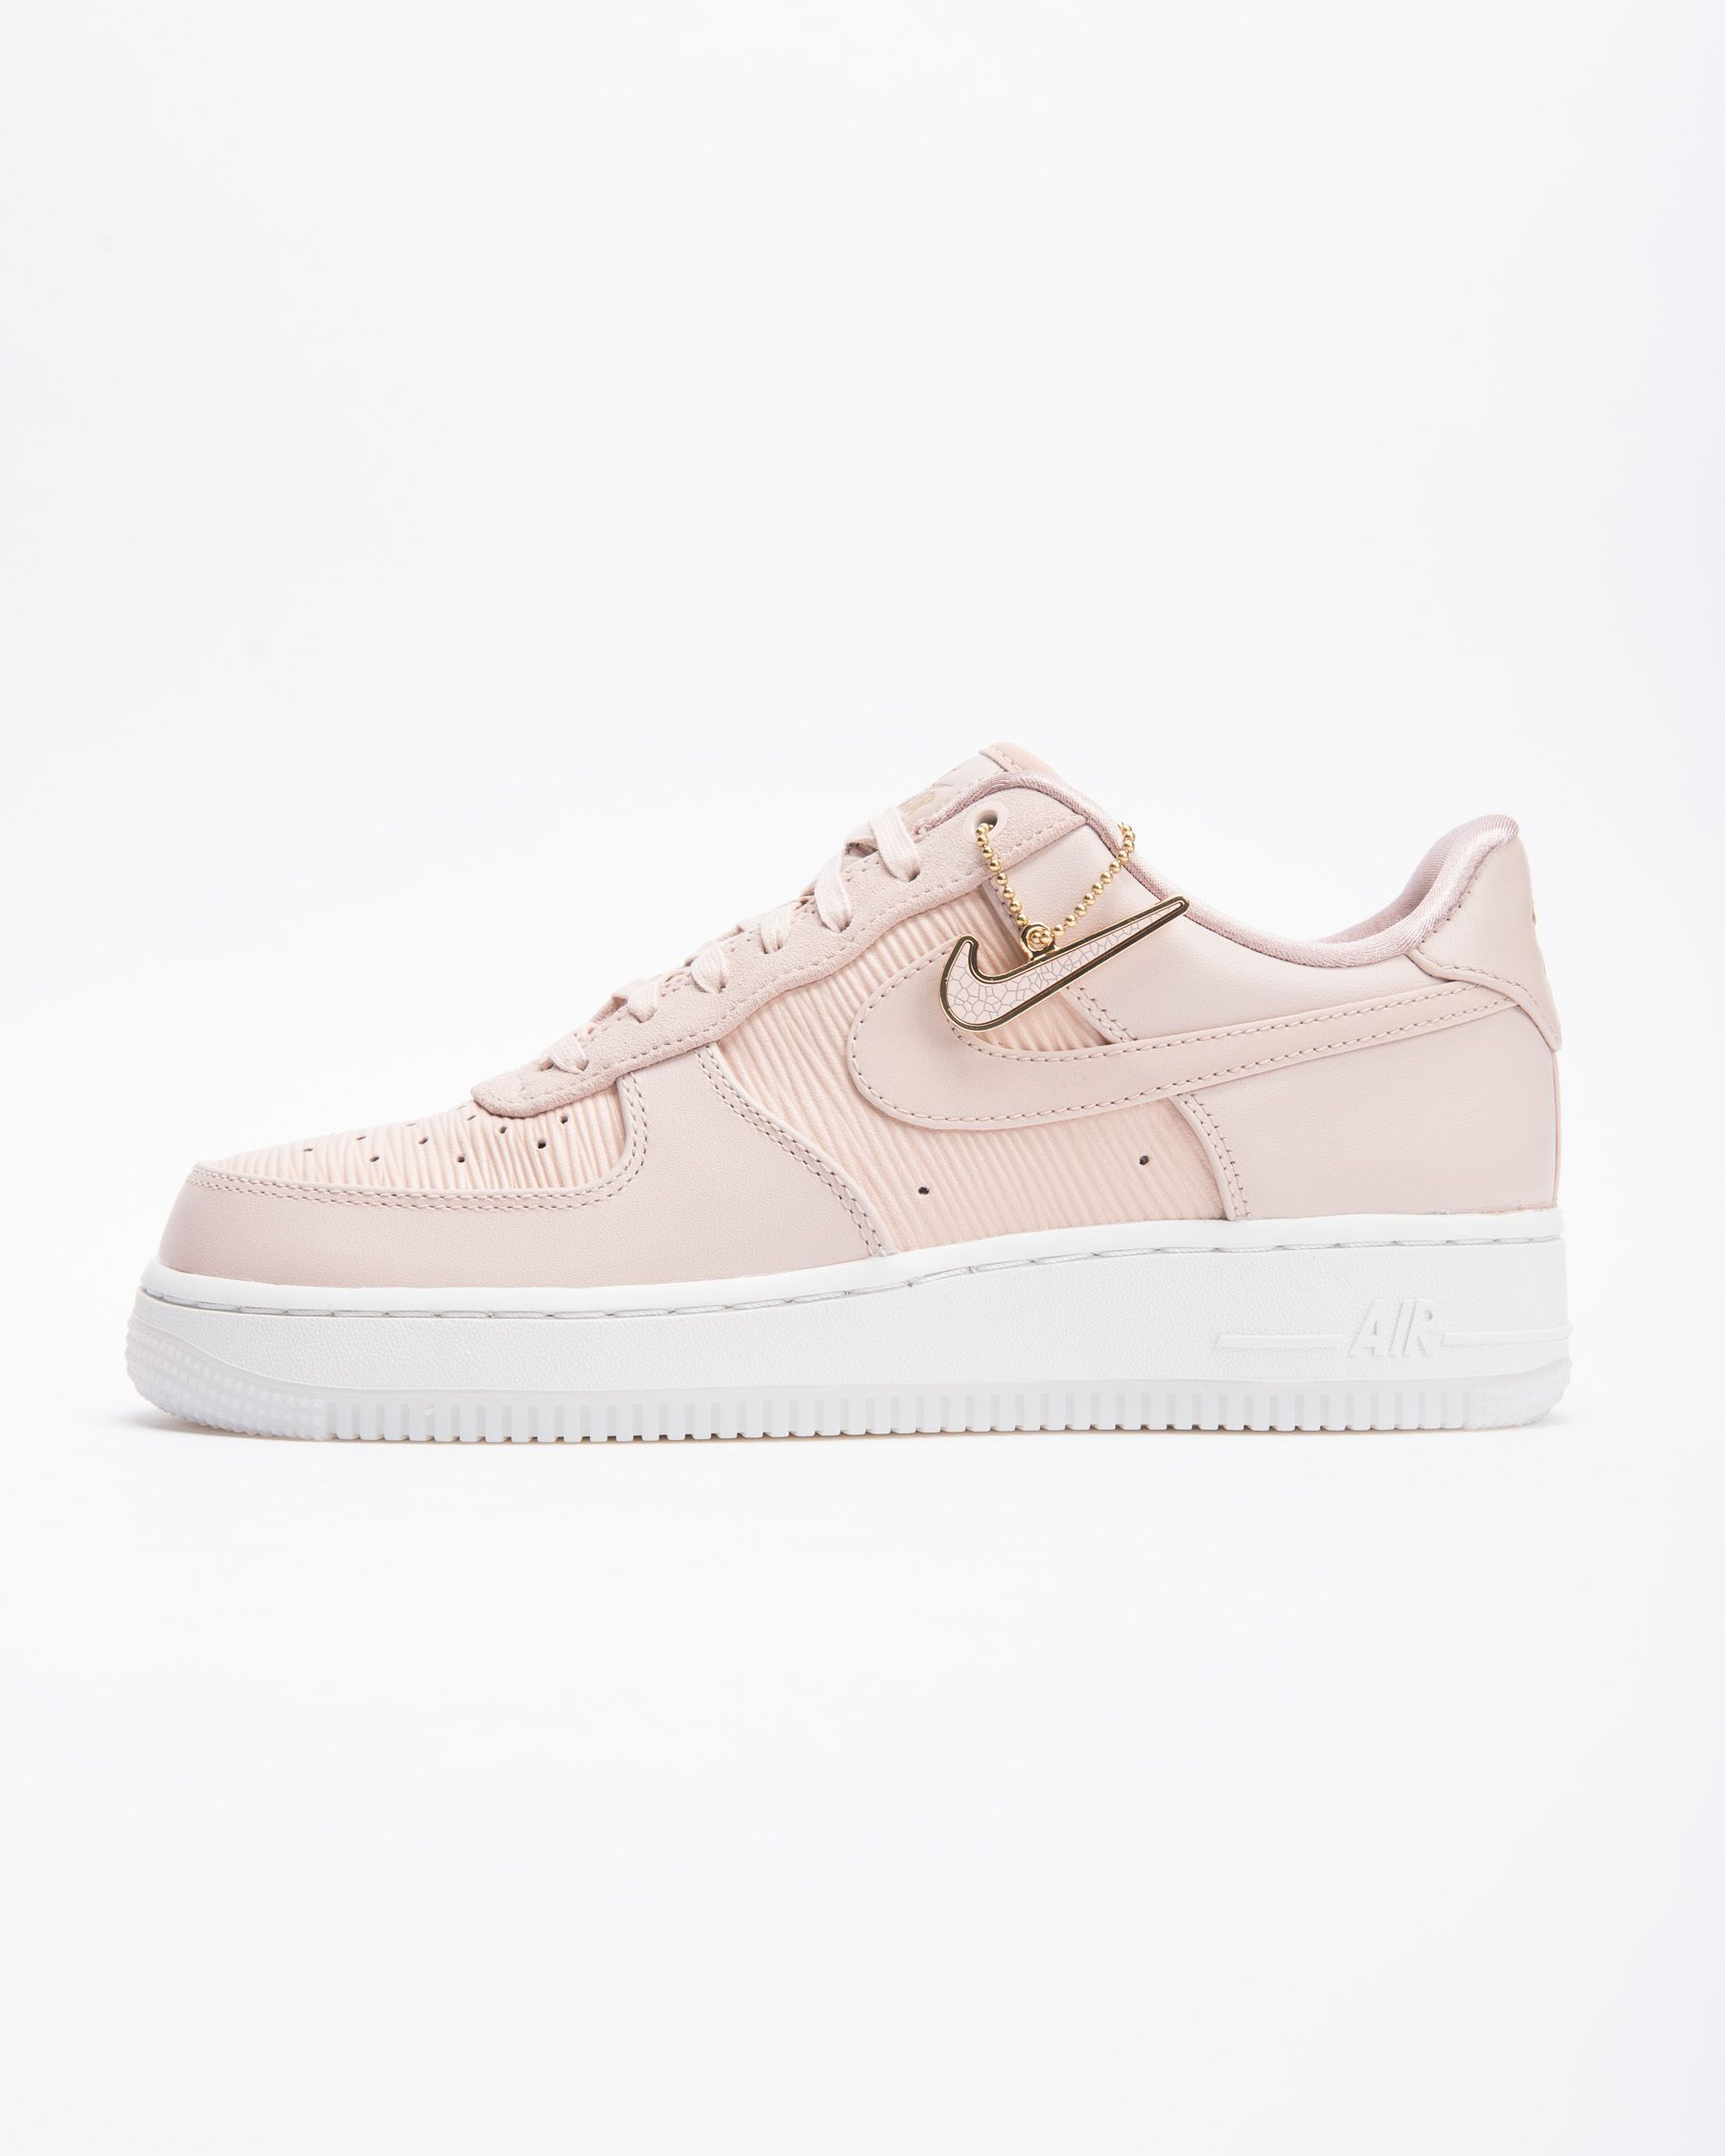 WMNS AIR FORCE 1 07 LX (With images) | Nike, Sneakers